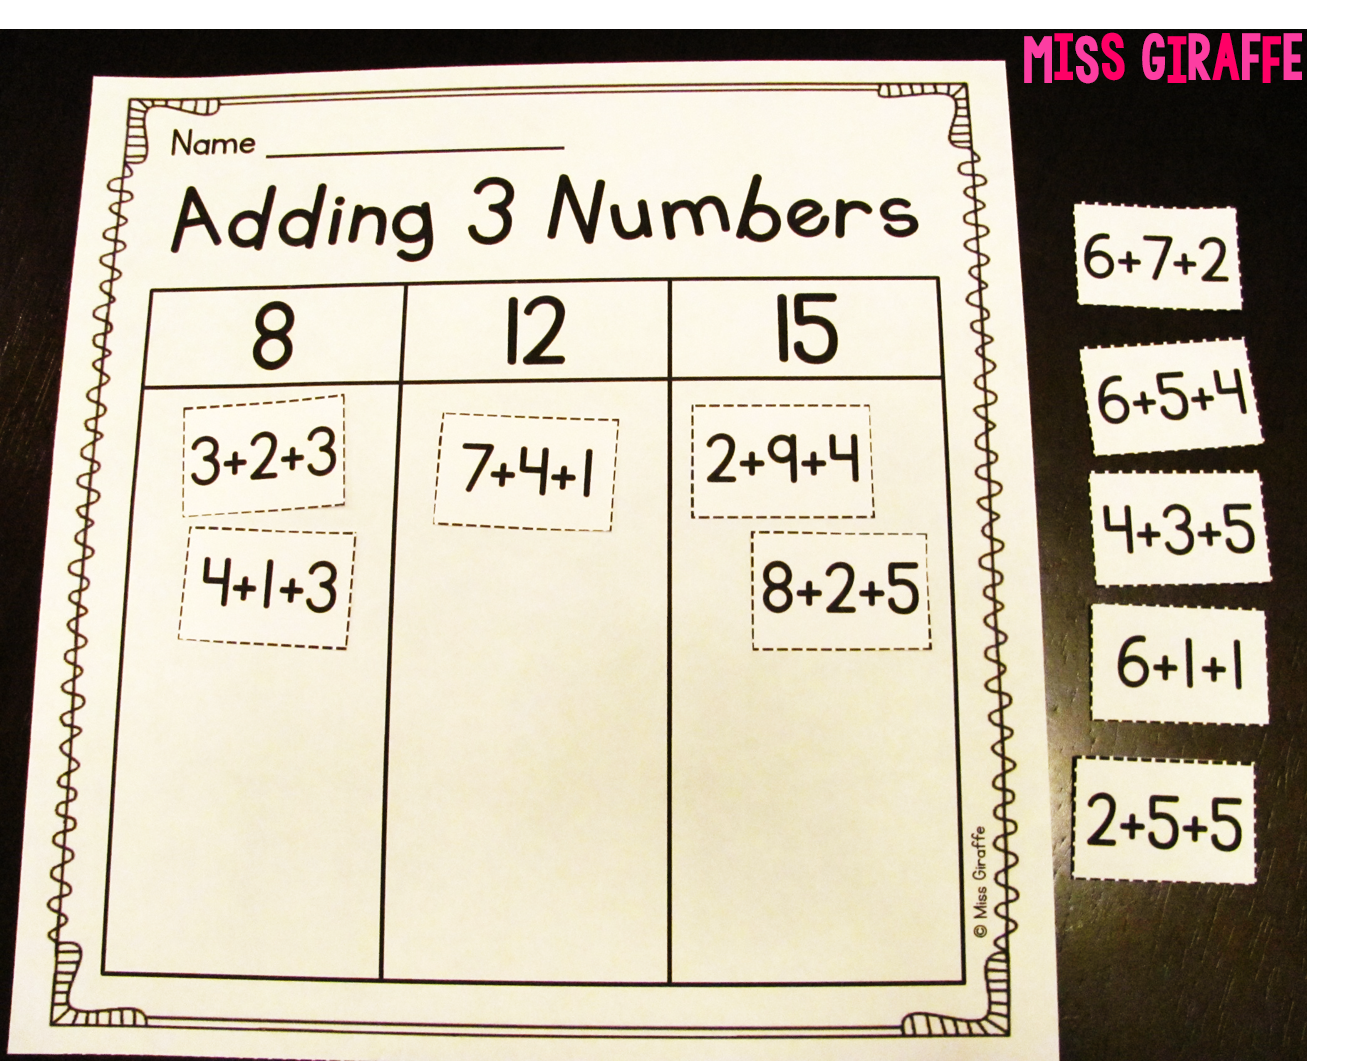 worksheet Adding Three Numbers Worksheet miss giraffes class adding 3 numbers first grade worksheets and activities to make addends hands on easy